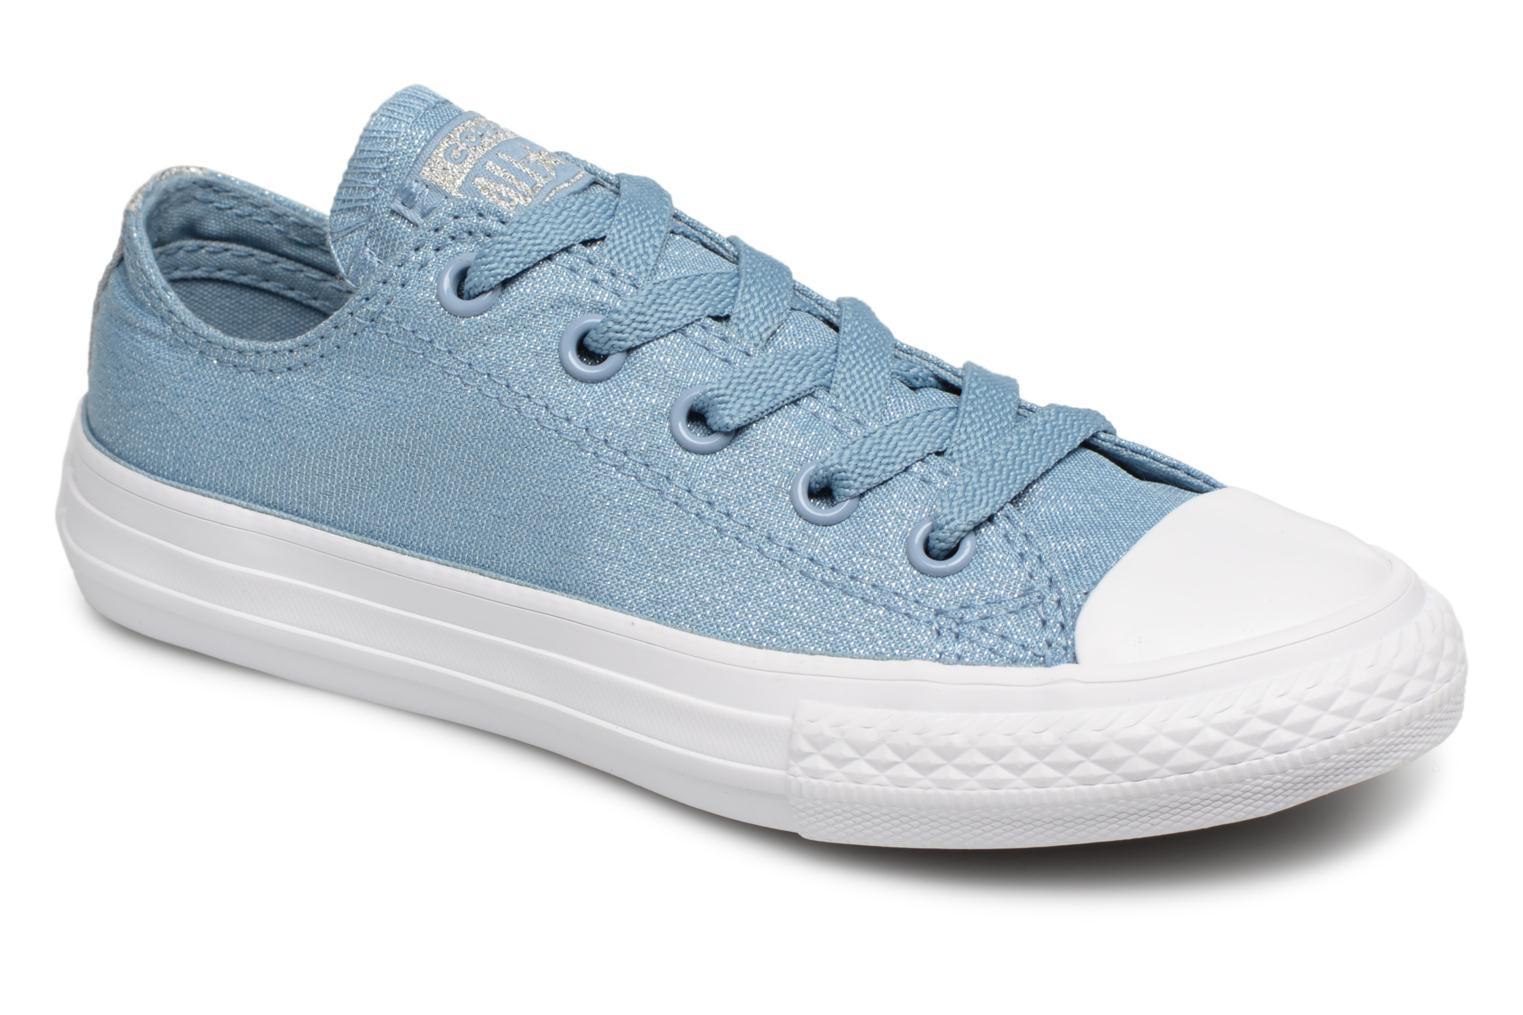 Sneakers Chuck Taylor All Star Ox by ConverseConverseBlauwPaar schoenen - Sneakers88875573898631Textiel